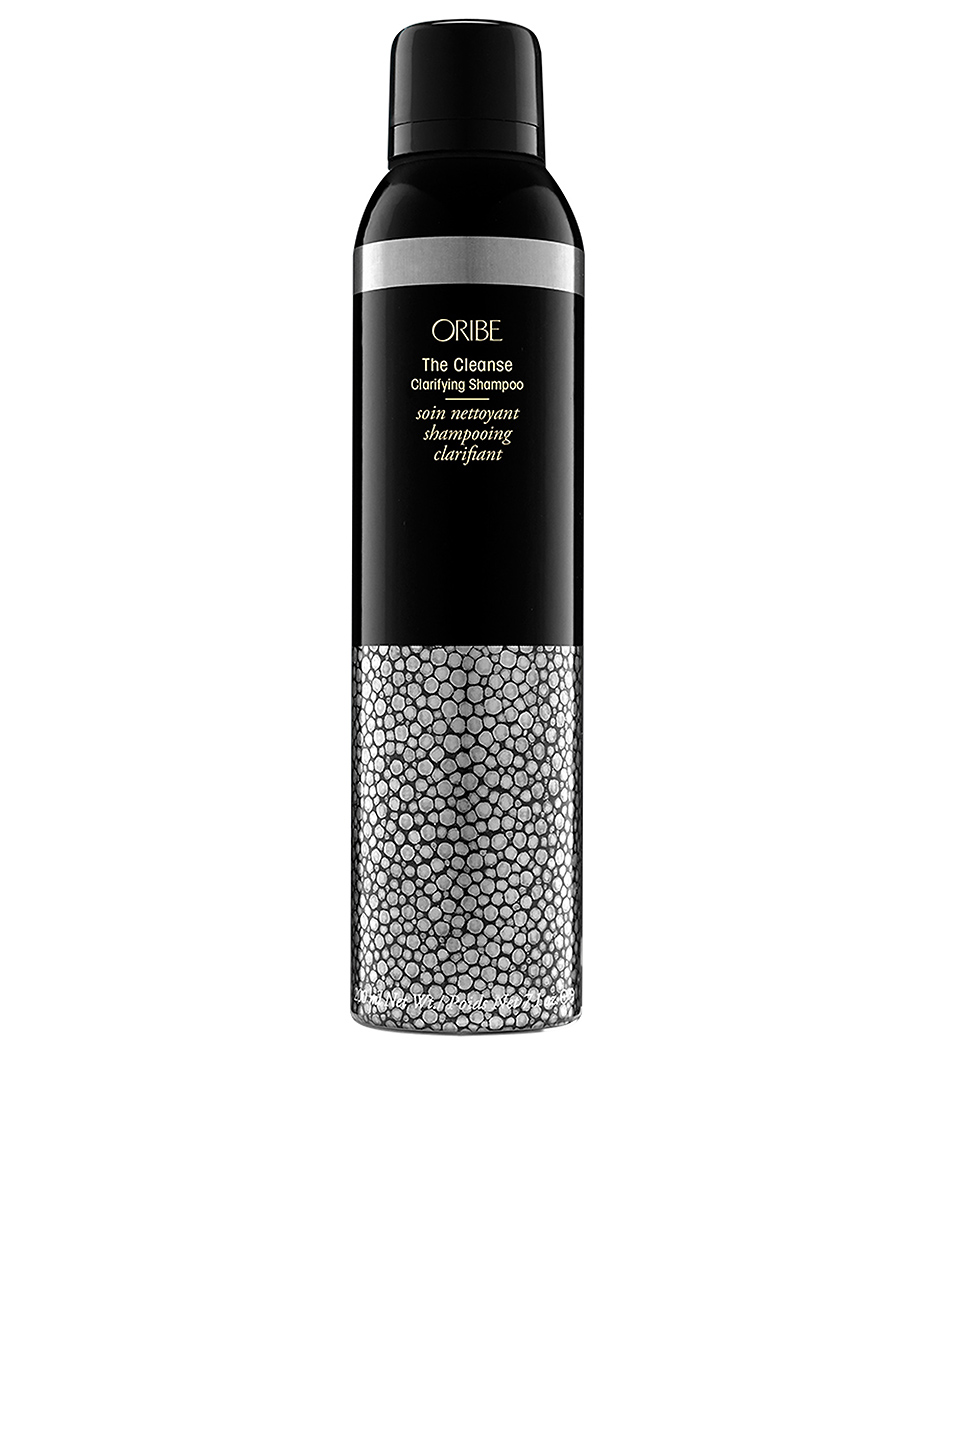 Oribe The Cleanse Clarifying Shampoo in